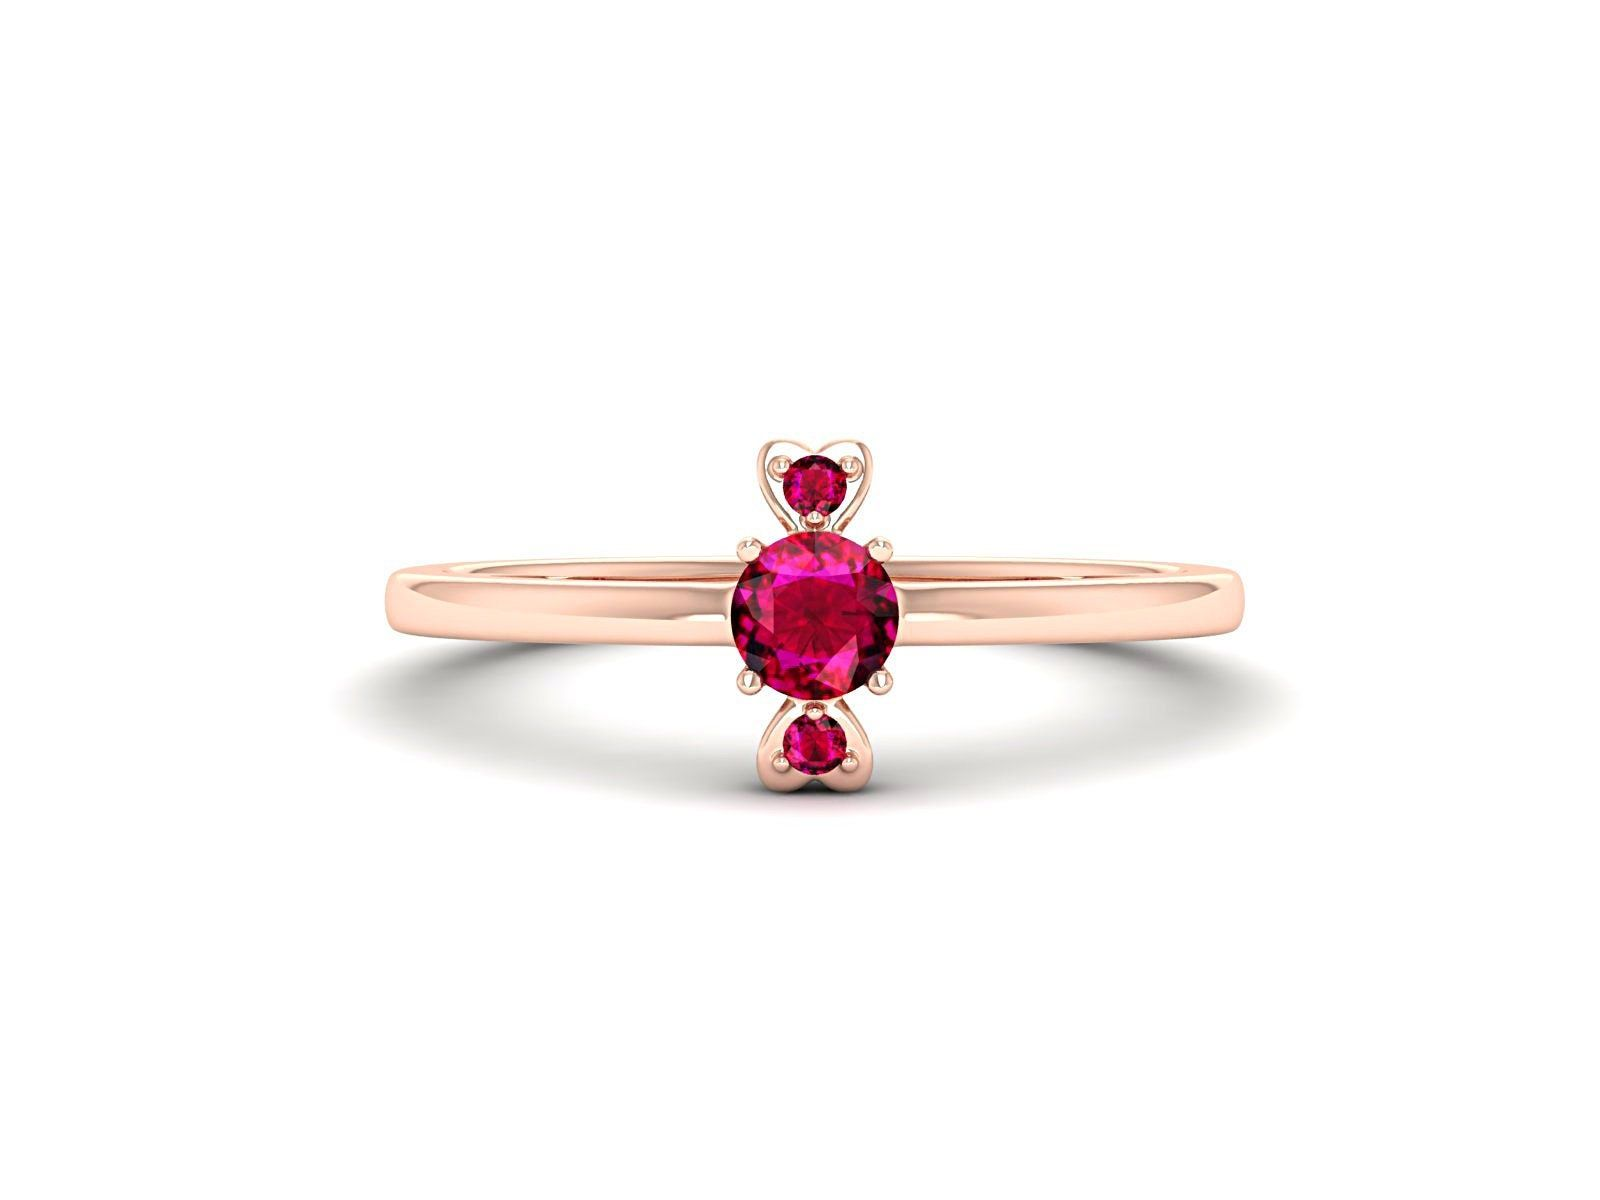 Center Stone : Ruby Ruby - The gem of love! This gemstone with its vivid reddish hue is recognizable from afar! Exquisite and exceptional, Ruby symbolizes a unique regal exotic beauty. The majestic stone resonates passion, femininity and love. Metal Available : Gold - The 14 and 18 carats Gold Rings ( Hallmarked ) come is 3 metal variants that include white gold, rose gold and yellow gold. Trust : The quality of our metals, stones, precious and semi-precious gems is unmistakable. All our gemston